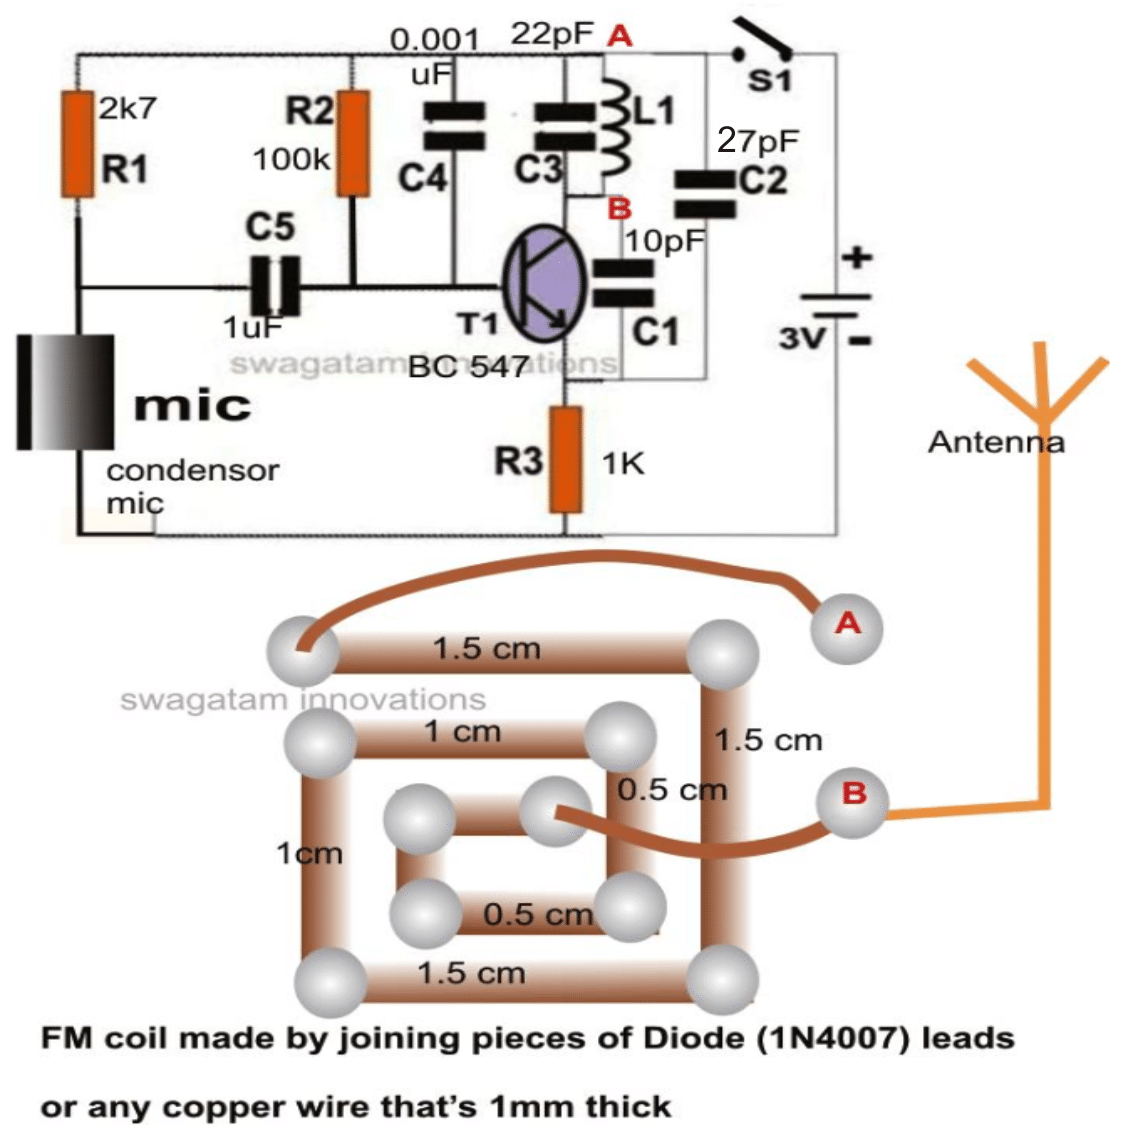 FM Wireless Microphone Circuit and Functioning